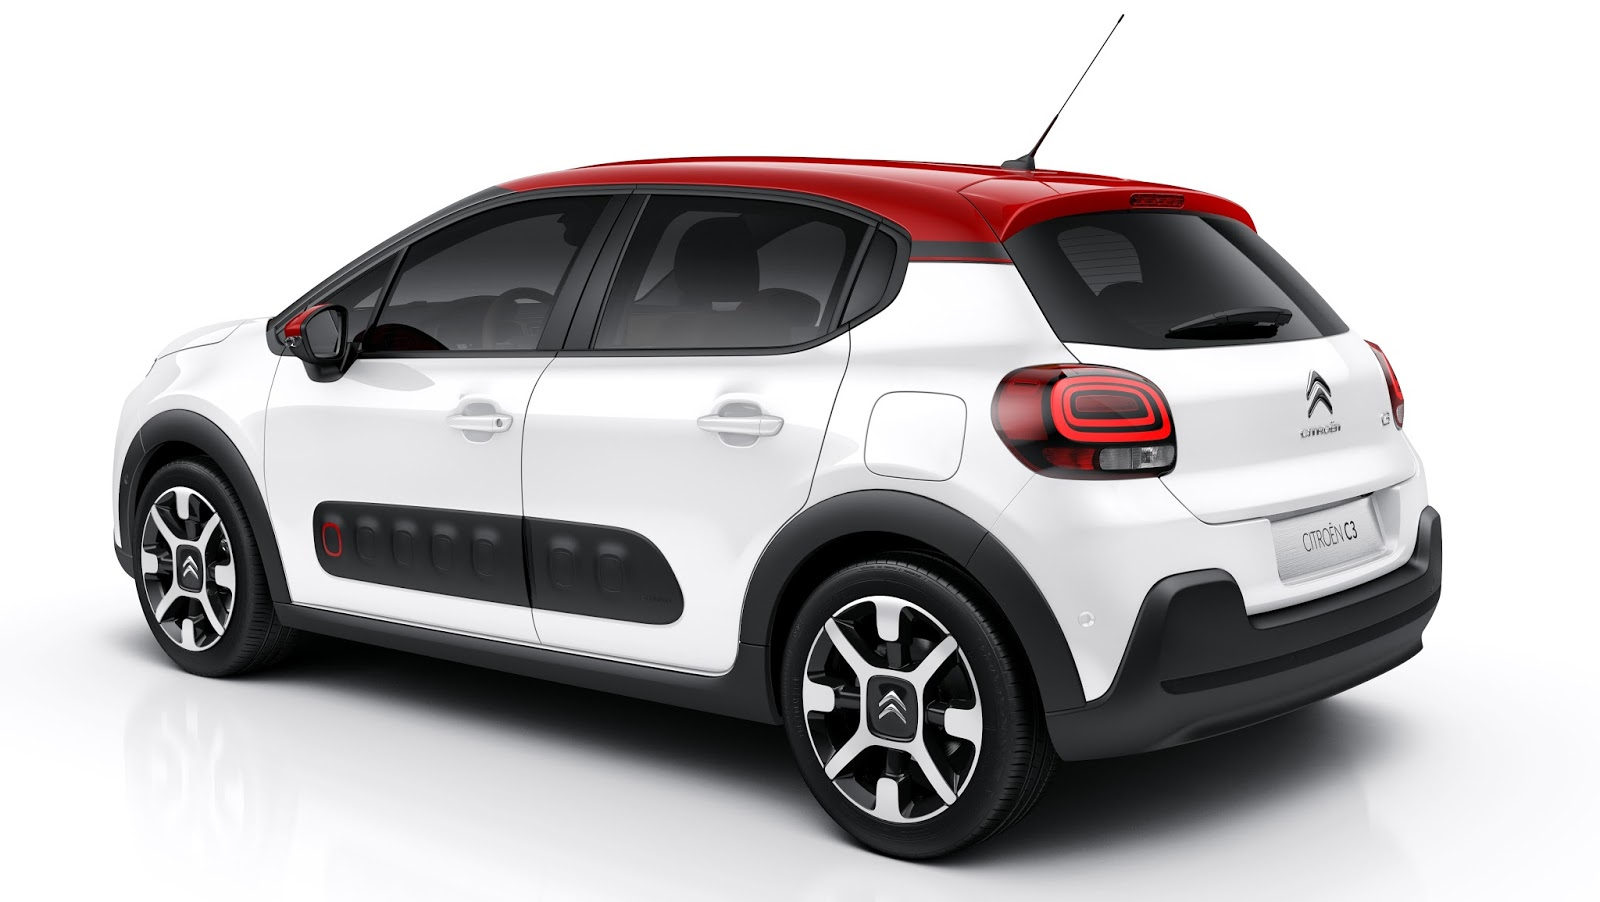 2017 citroen c3 leaks ahead of official reveal looks like a smaller c4 cactus autoevolution